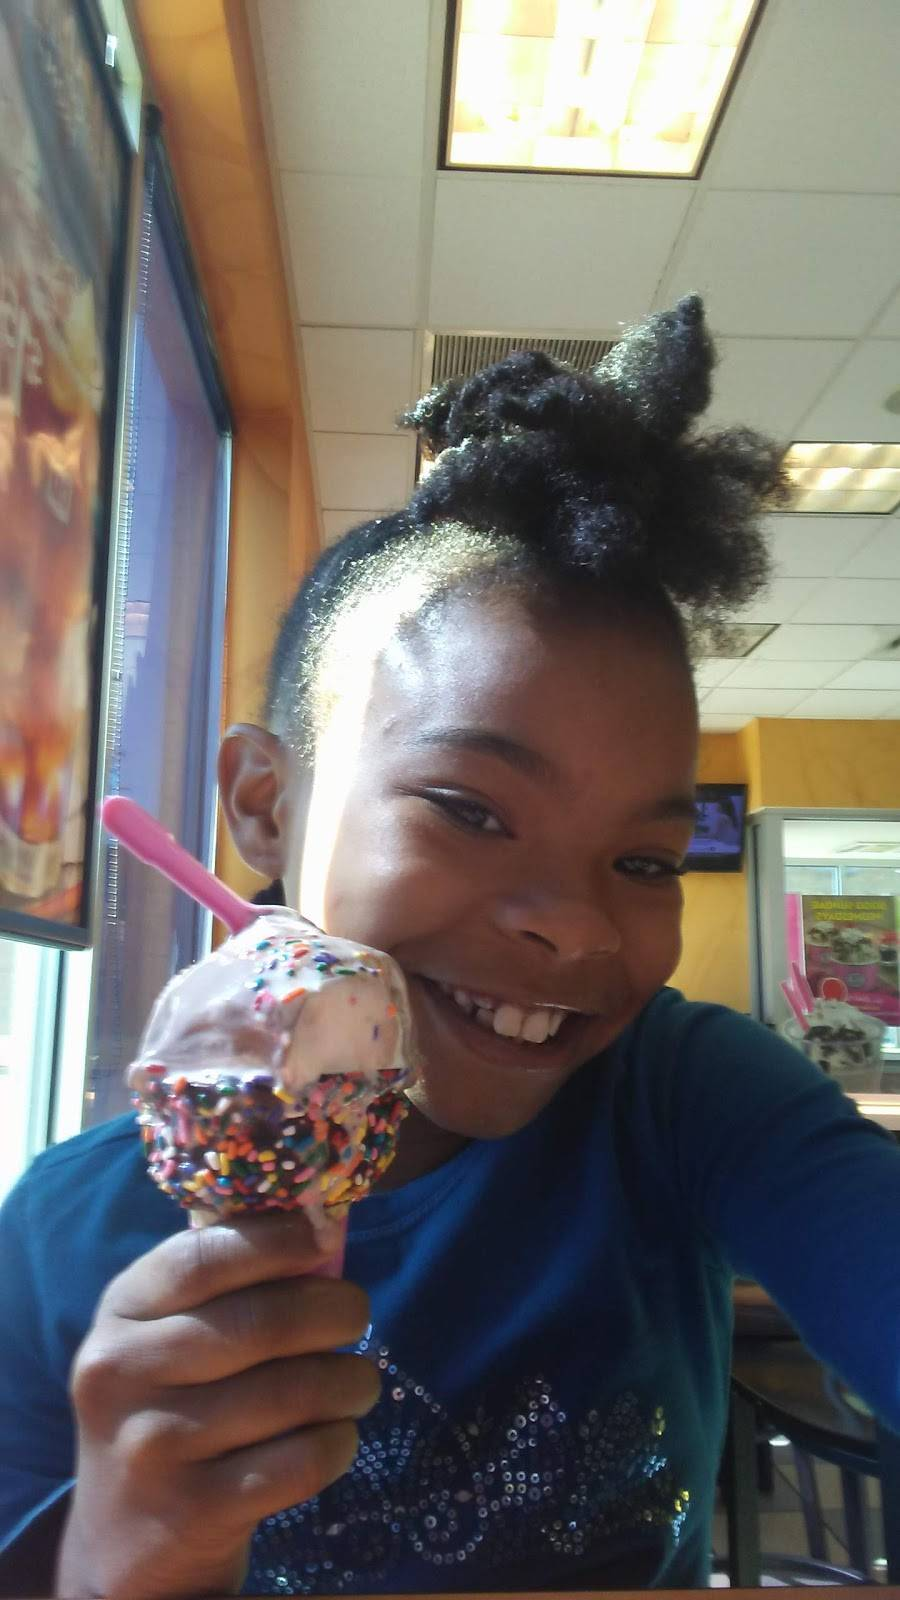 Dunkin Donuts   cafe   17733 Torrence Ave, Lansing, IL 60438, USA   7084188701 OR +1 708-418-8701